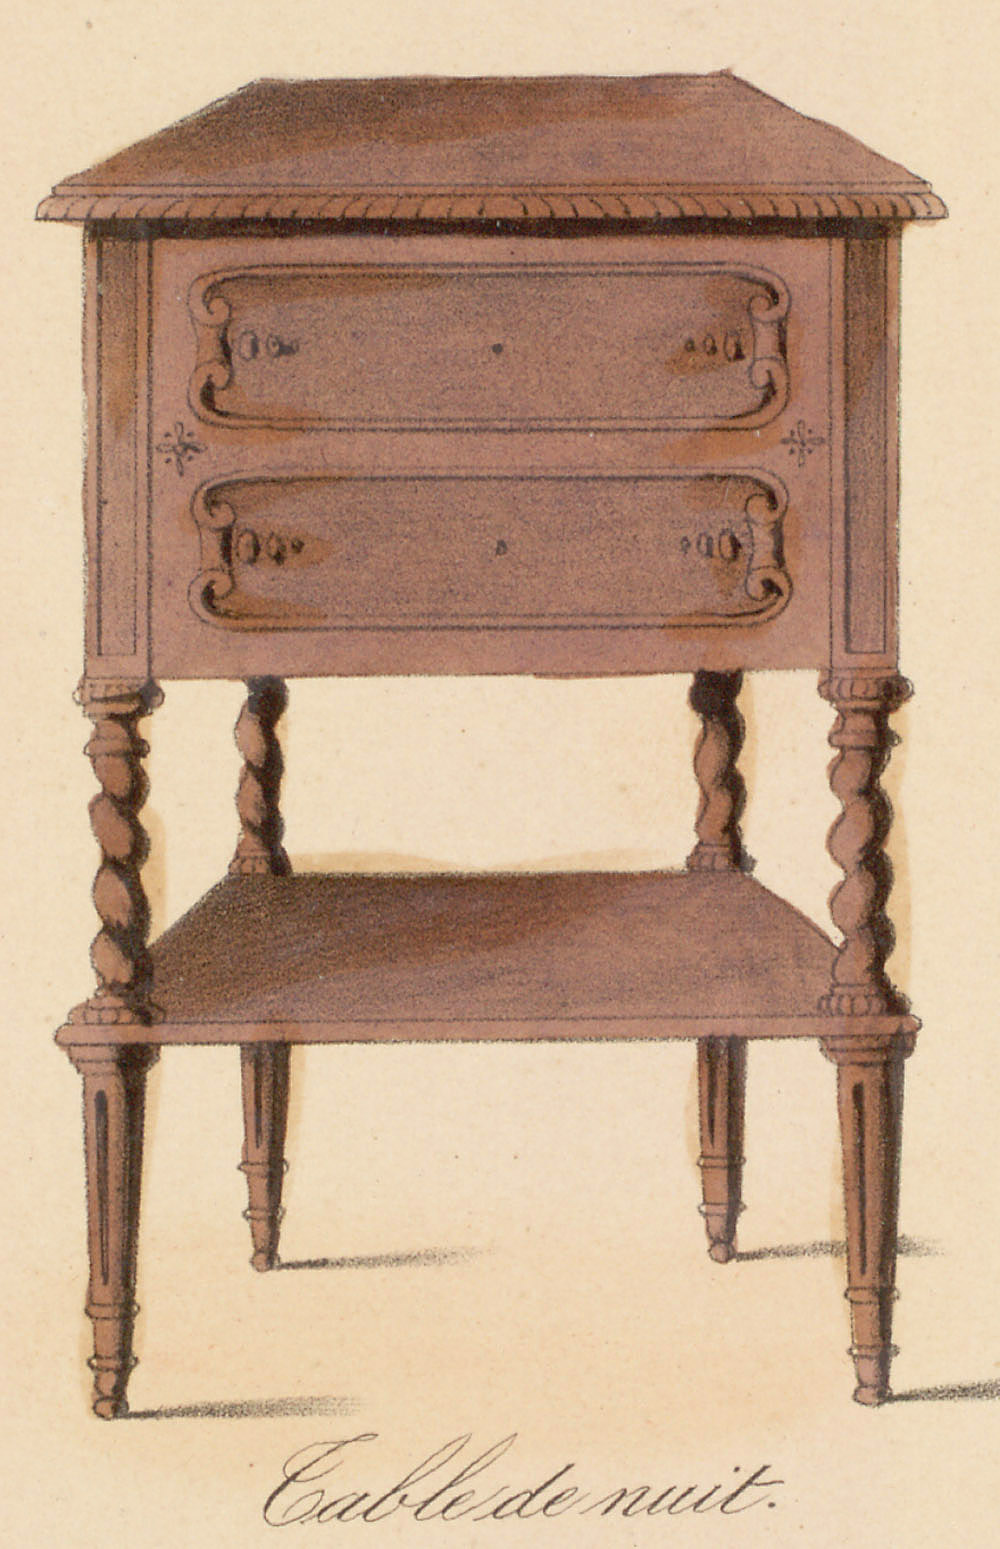 Cabinets (case furniture),  Image number:SIL12-2-022c